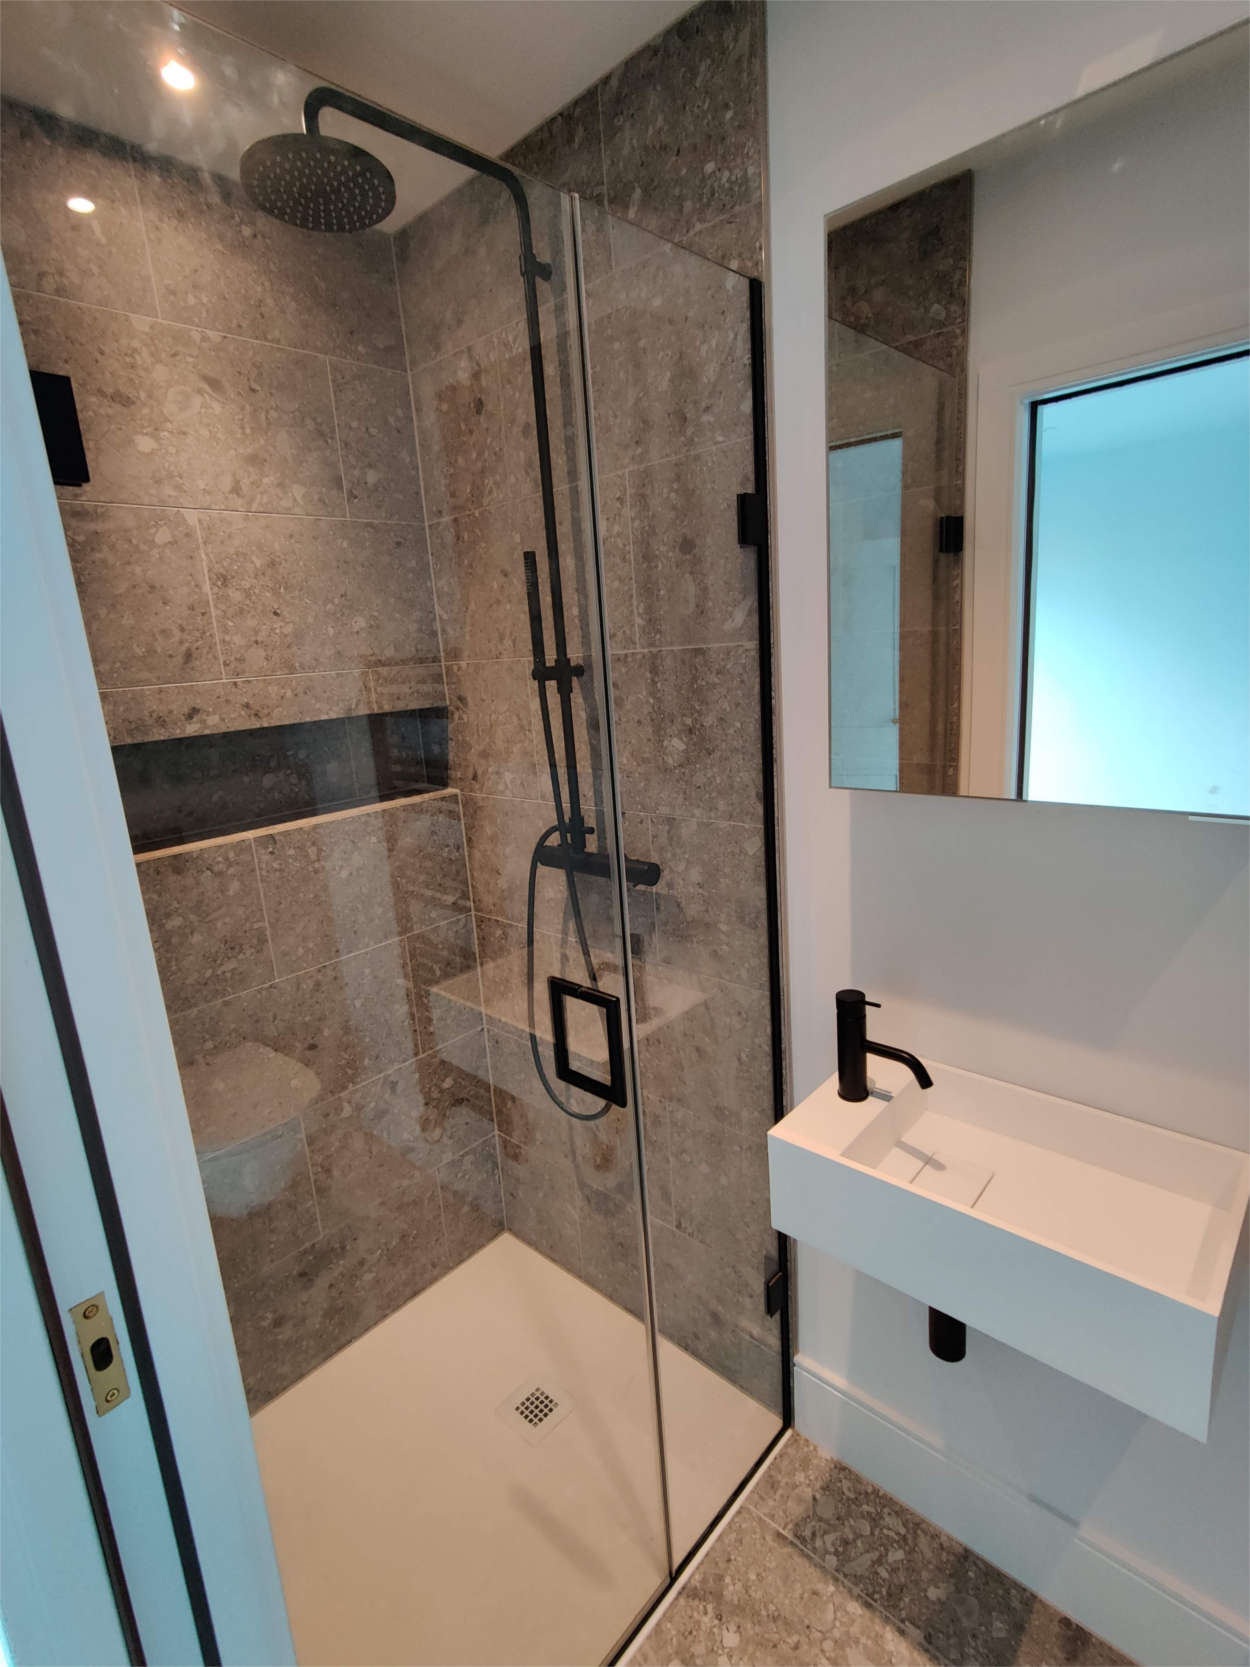 Monochrome ensuite shower